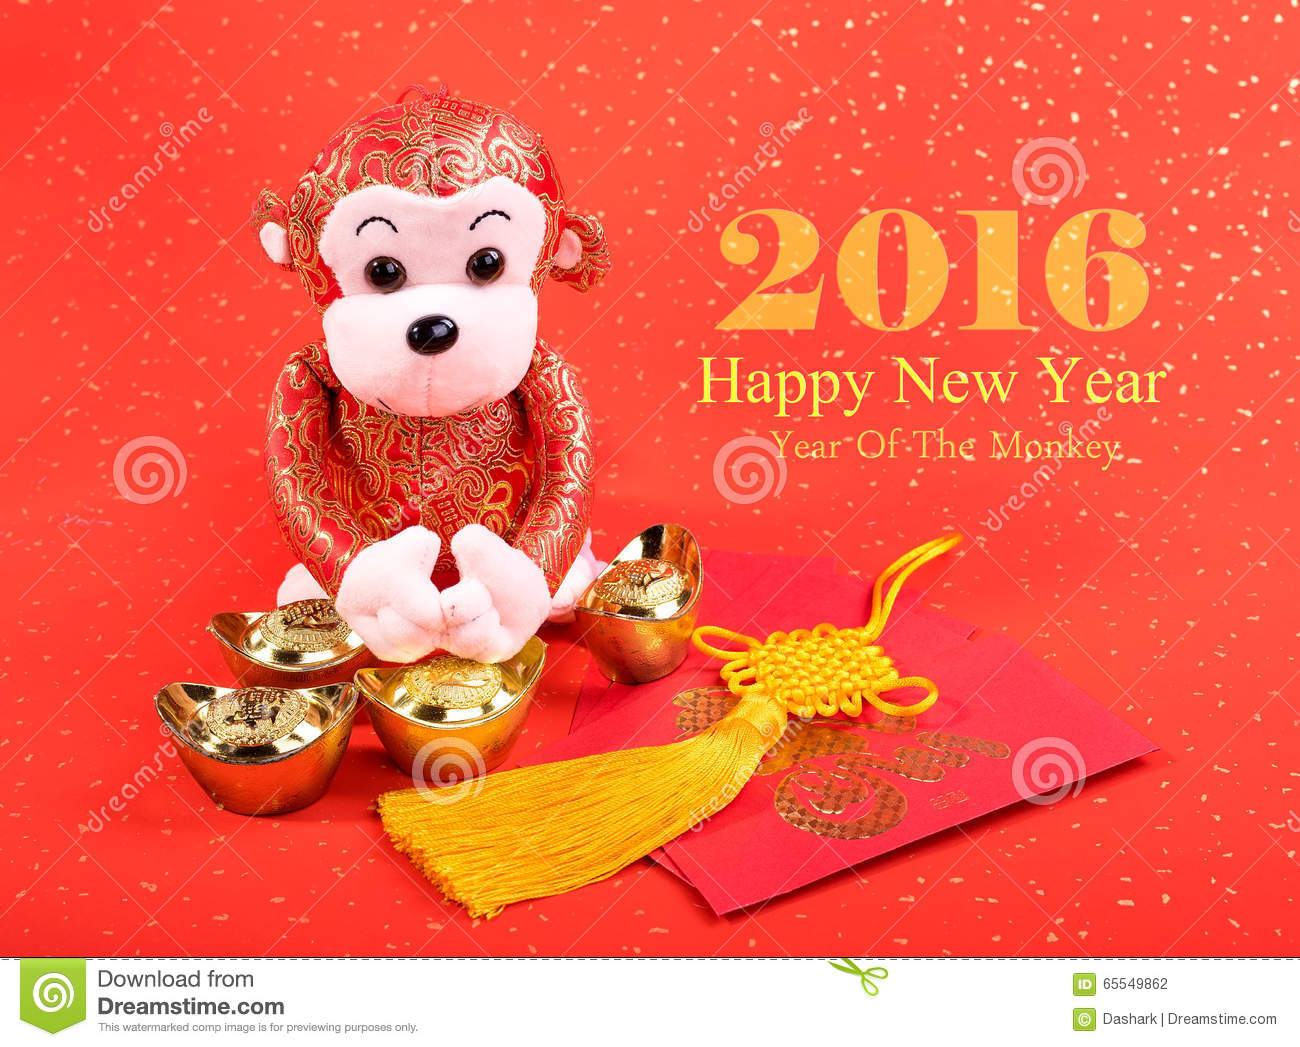 Chinese Lunar New Year Ornaments Toy Of Monkey Stock Photo - Image ...